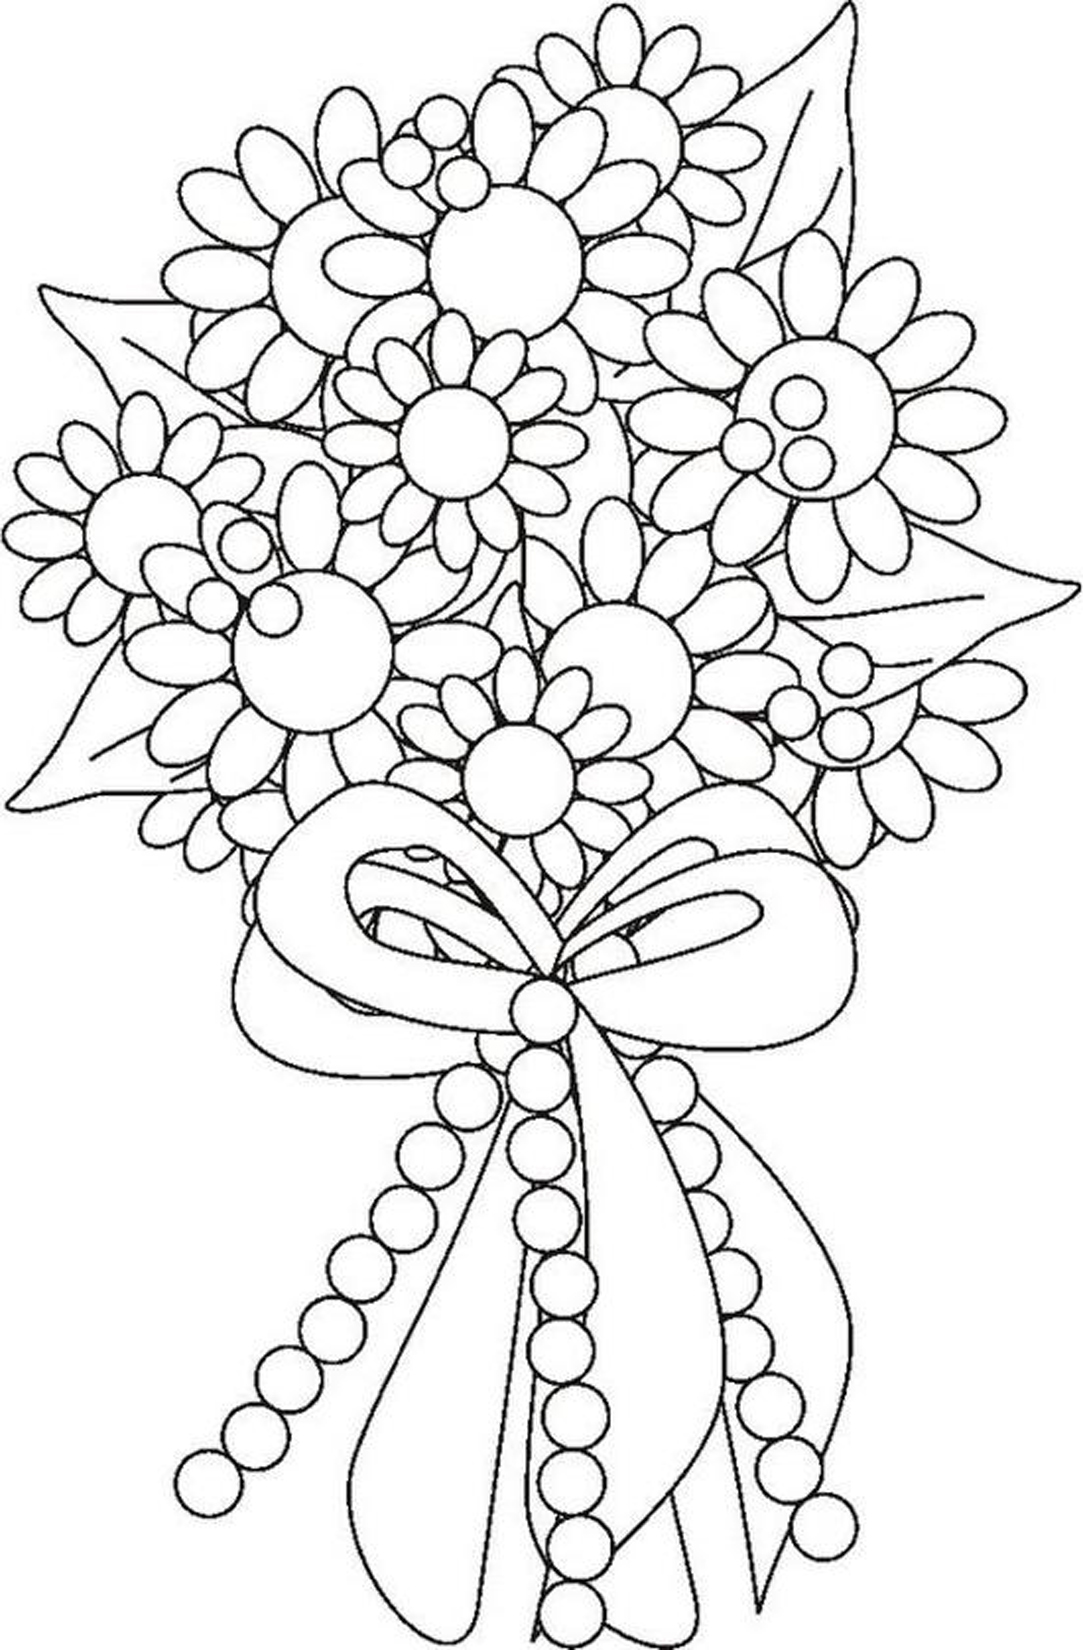 coloring pictures of bouquet of flowers flower bouquet coloring page flickr photo sharing bouquet of pictures coloring flowers of